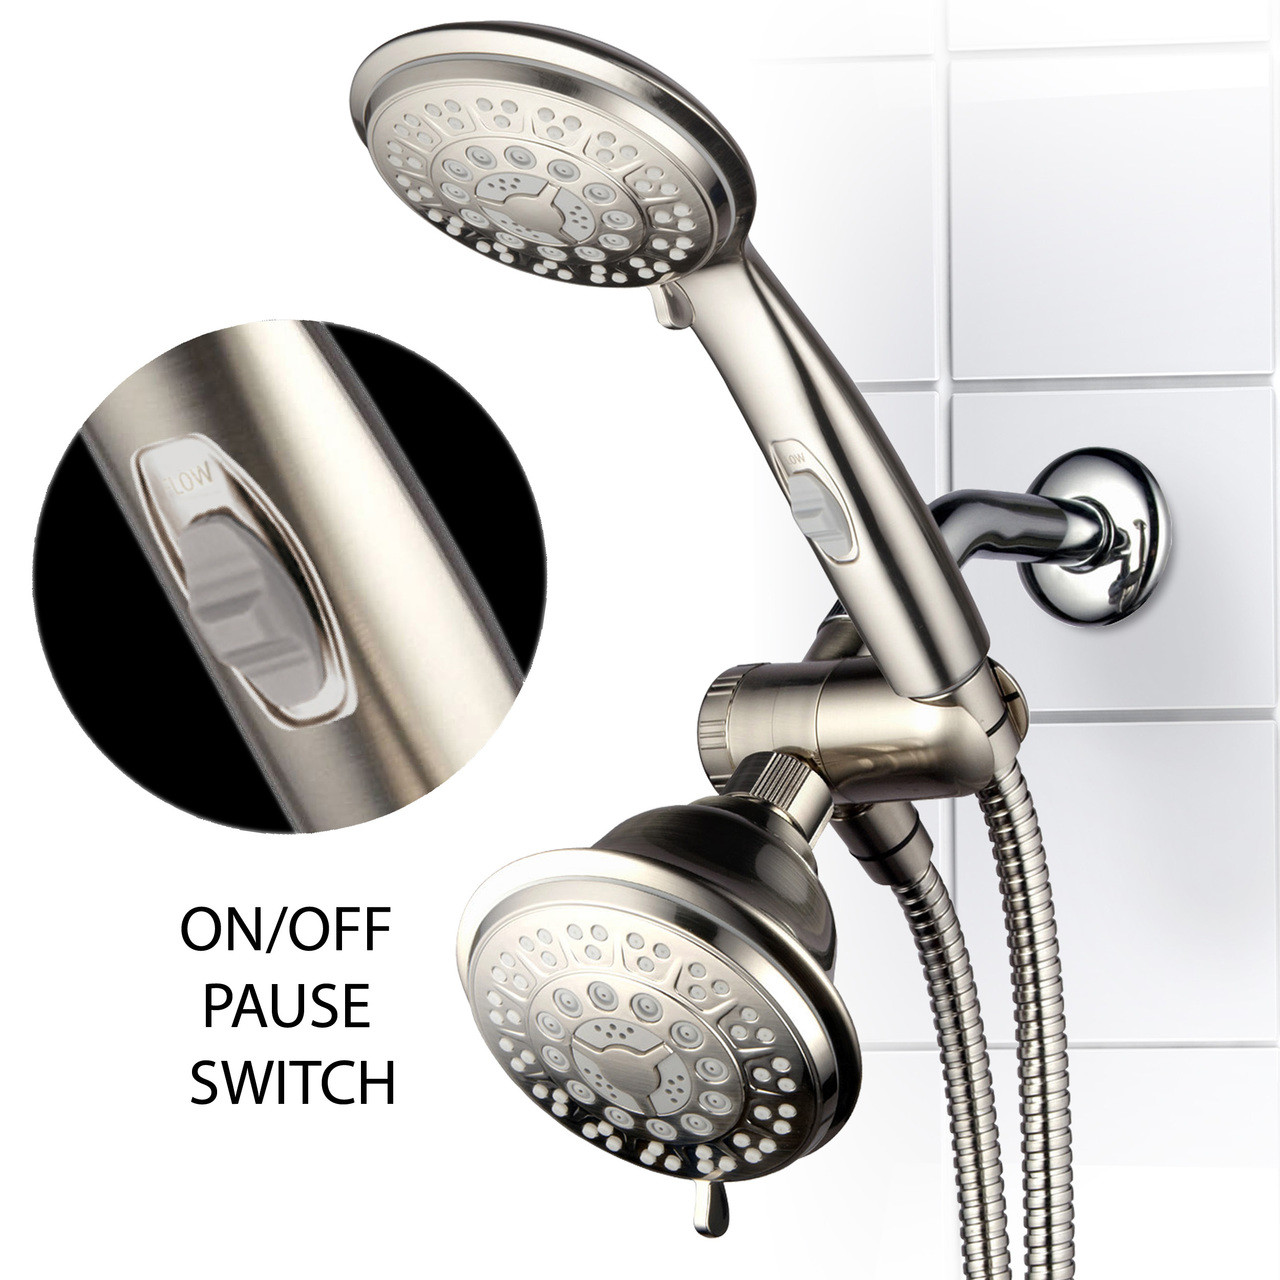 Hotel Spa 42 Setting Ultra Luxury 3 Way Combo With On Off Pause Switch Brushed Nickel